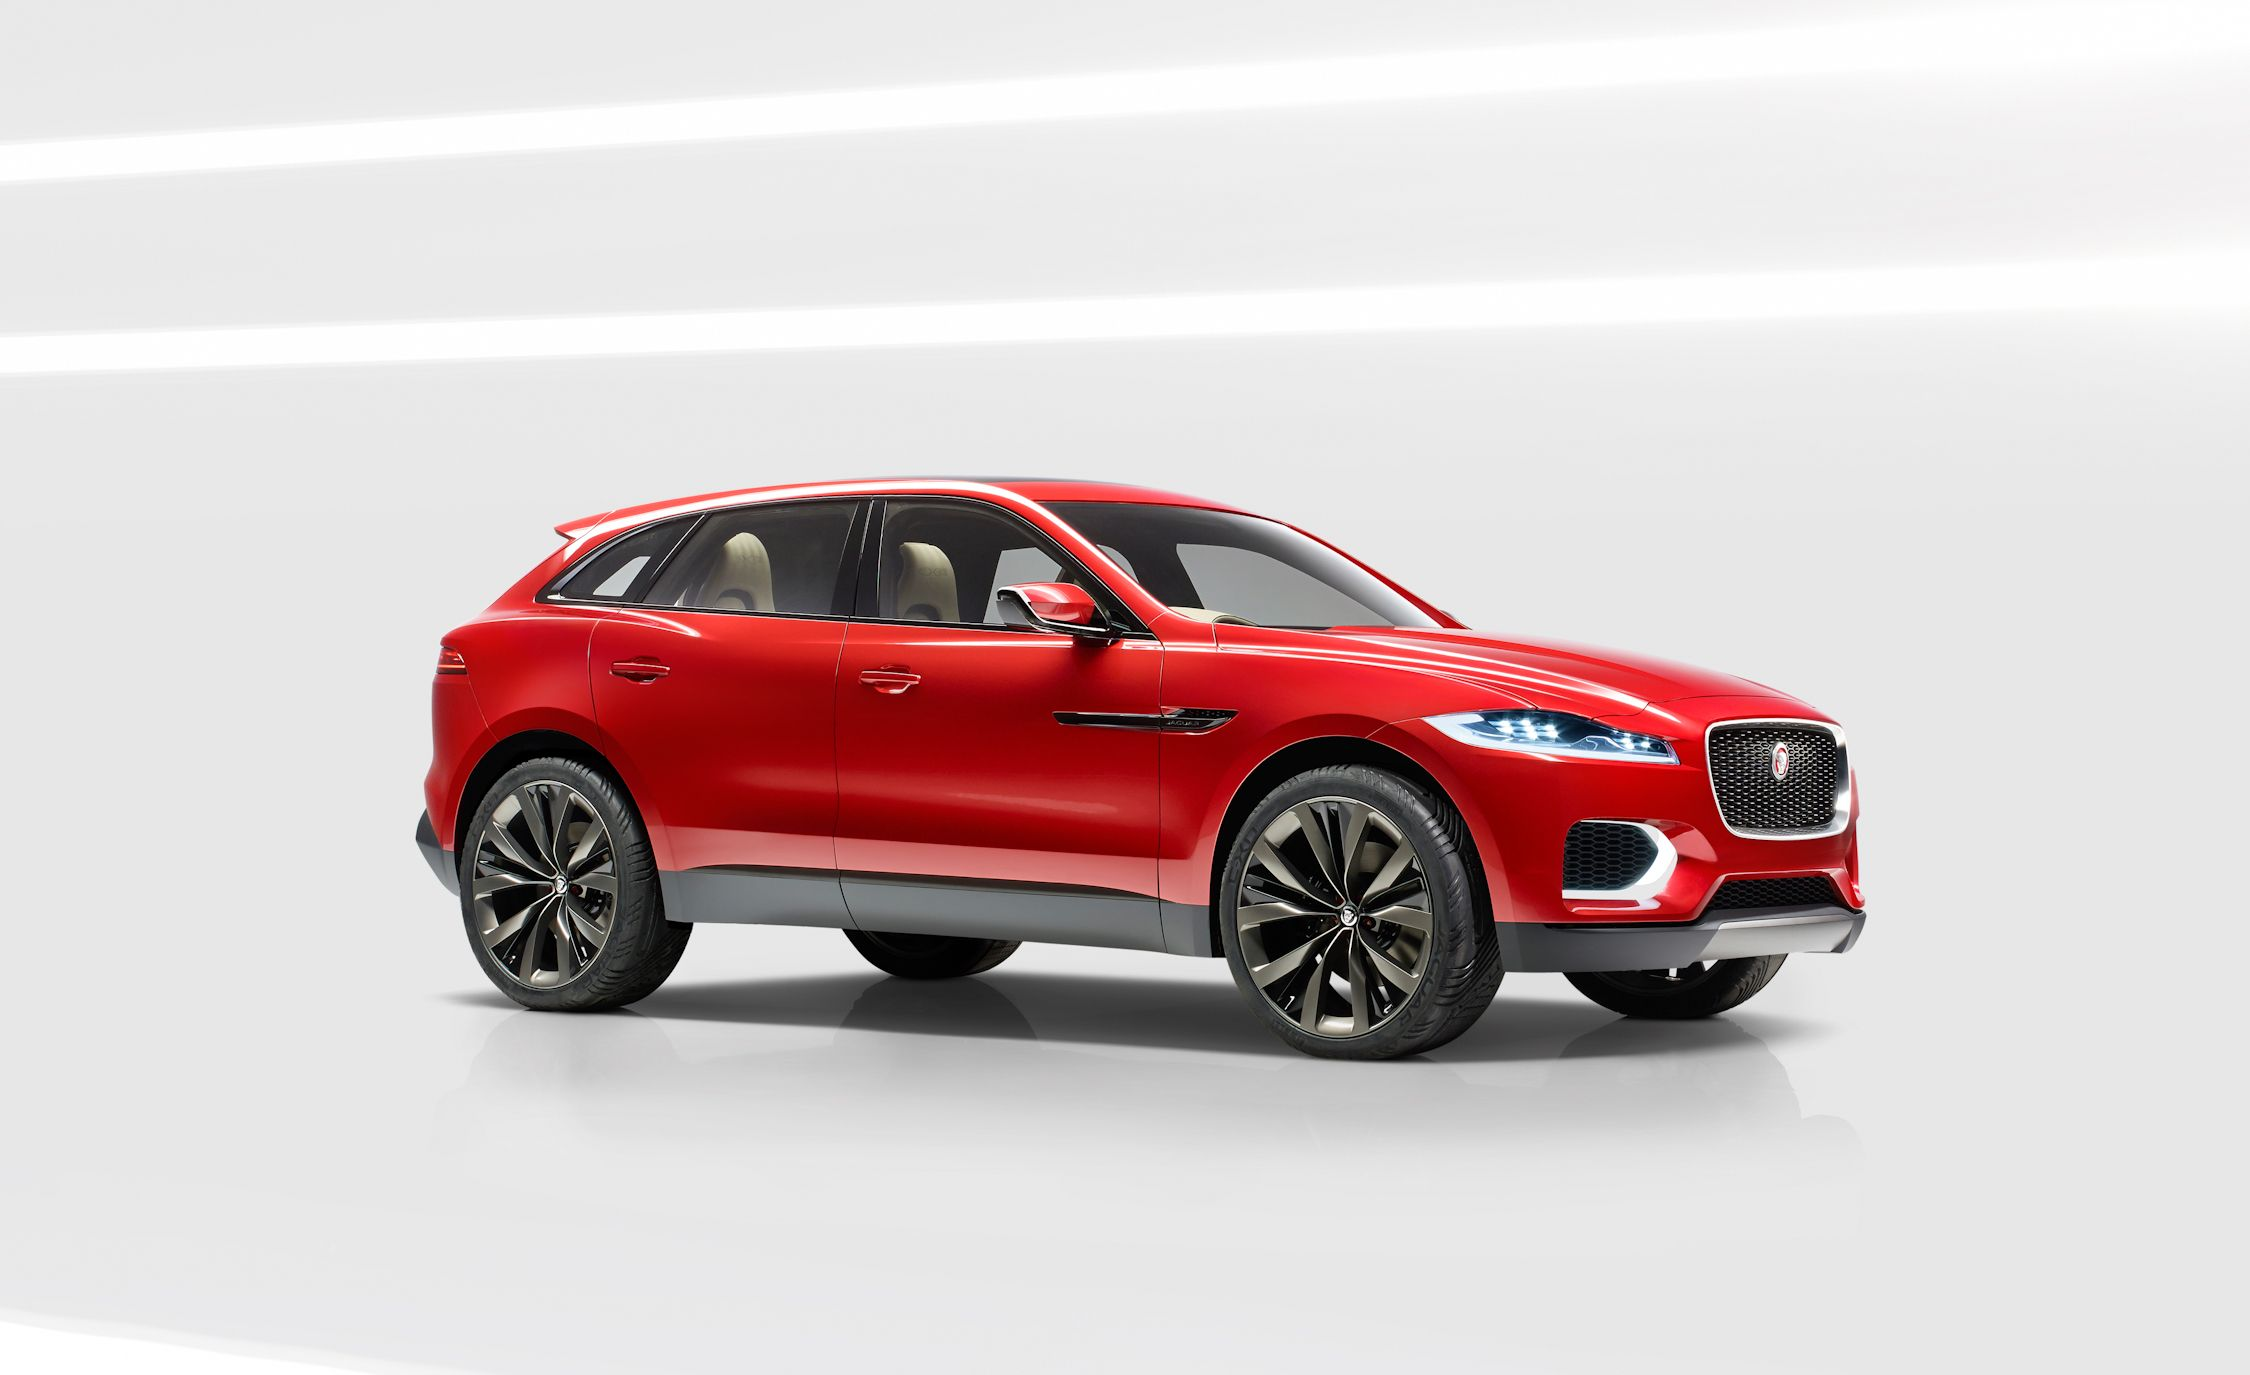 new release jaguar car2017 Jaguar FPace 25 Cars Worth Waiting For  Feature  Car and